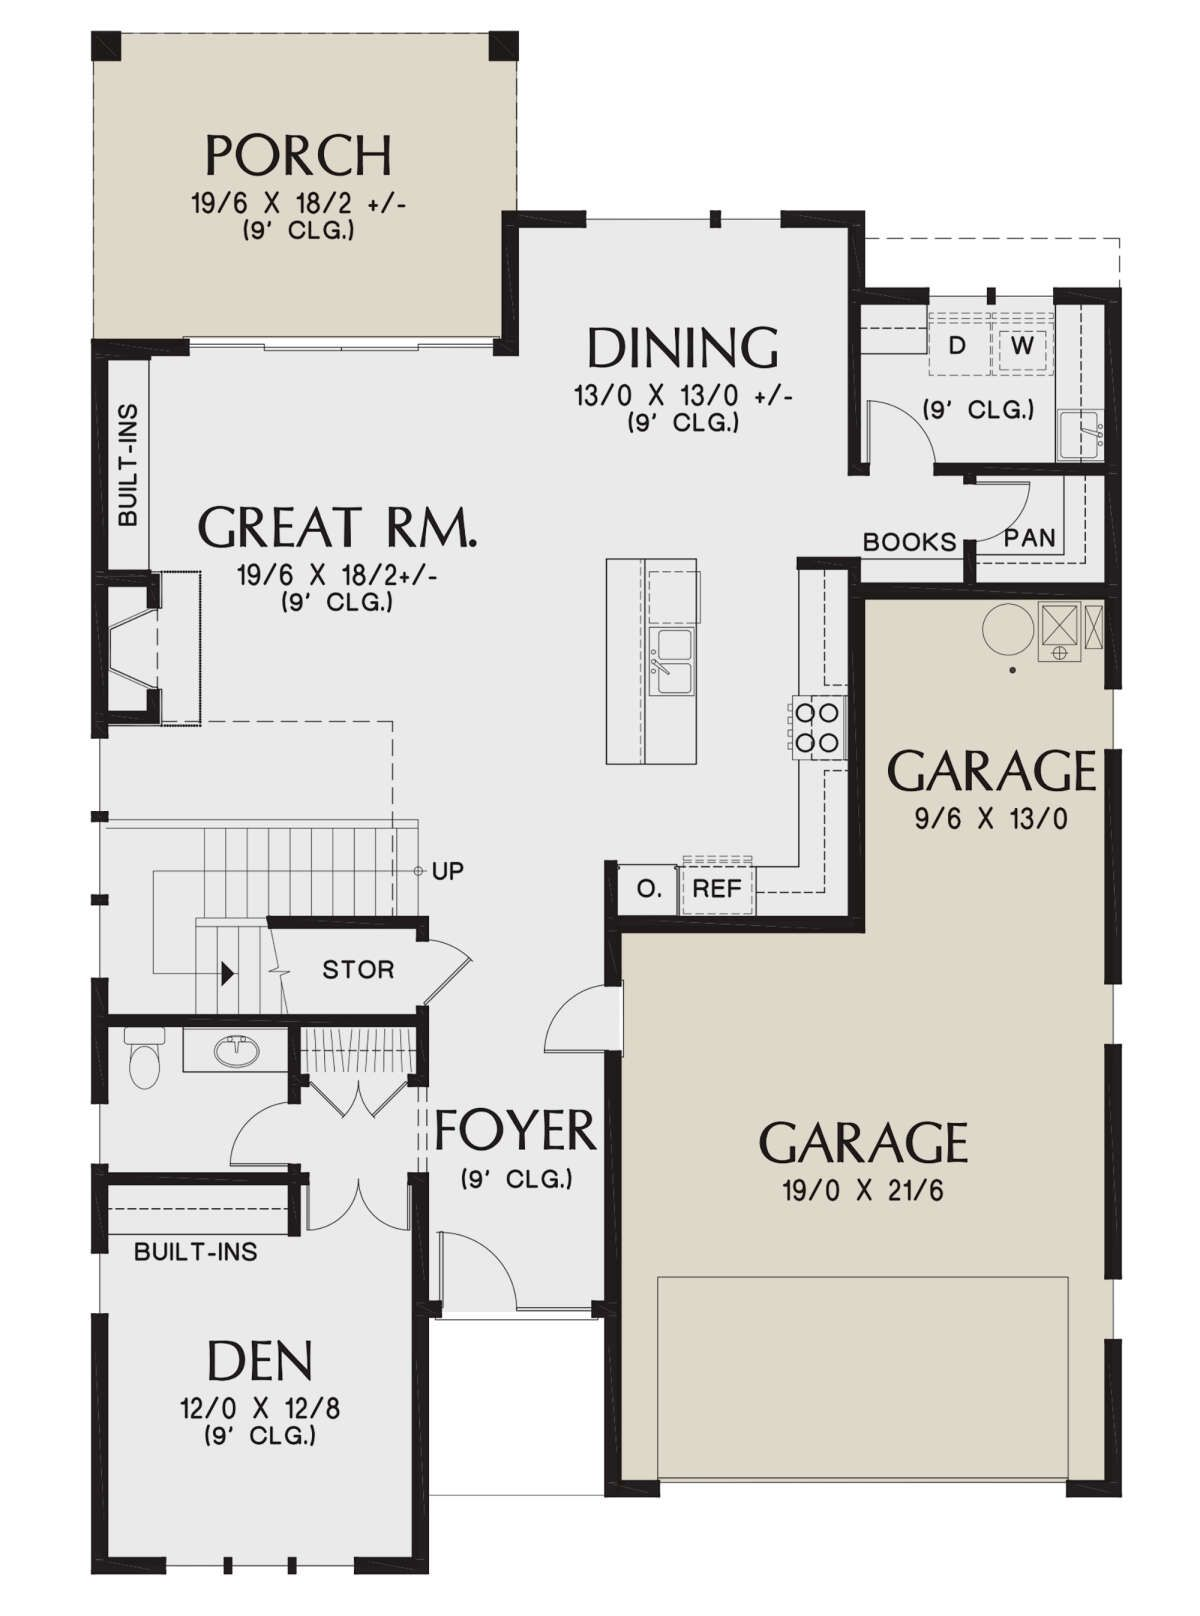 House Plan 2559 00889 Contemporary Plan 2 884 Square Feet 4 Bedrooms 2 5 Bathrooms In 2021 Contemporary House Plans House Plans Contemporary Style Homes